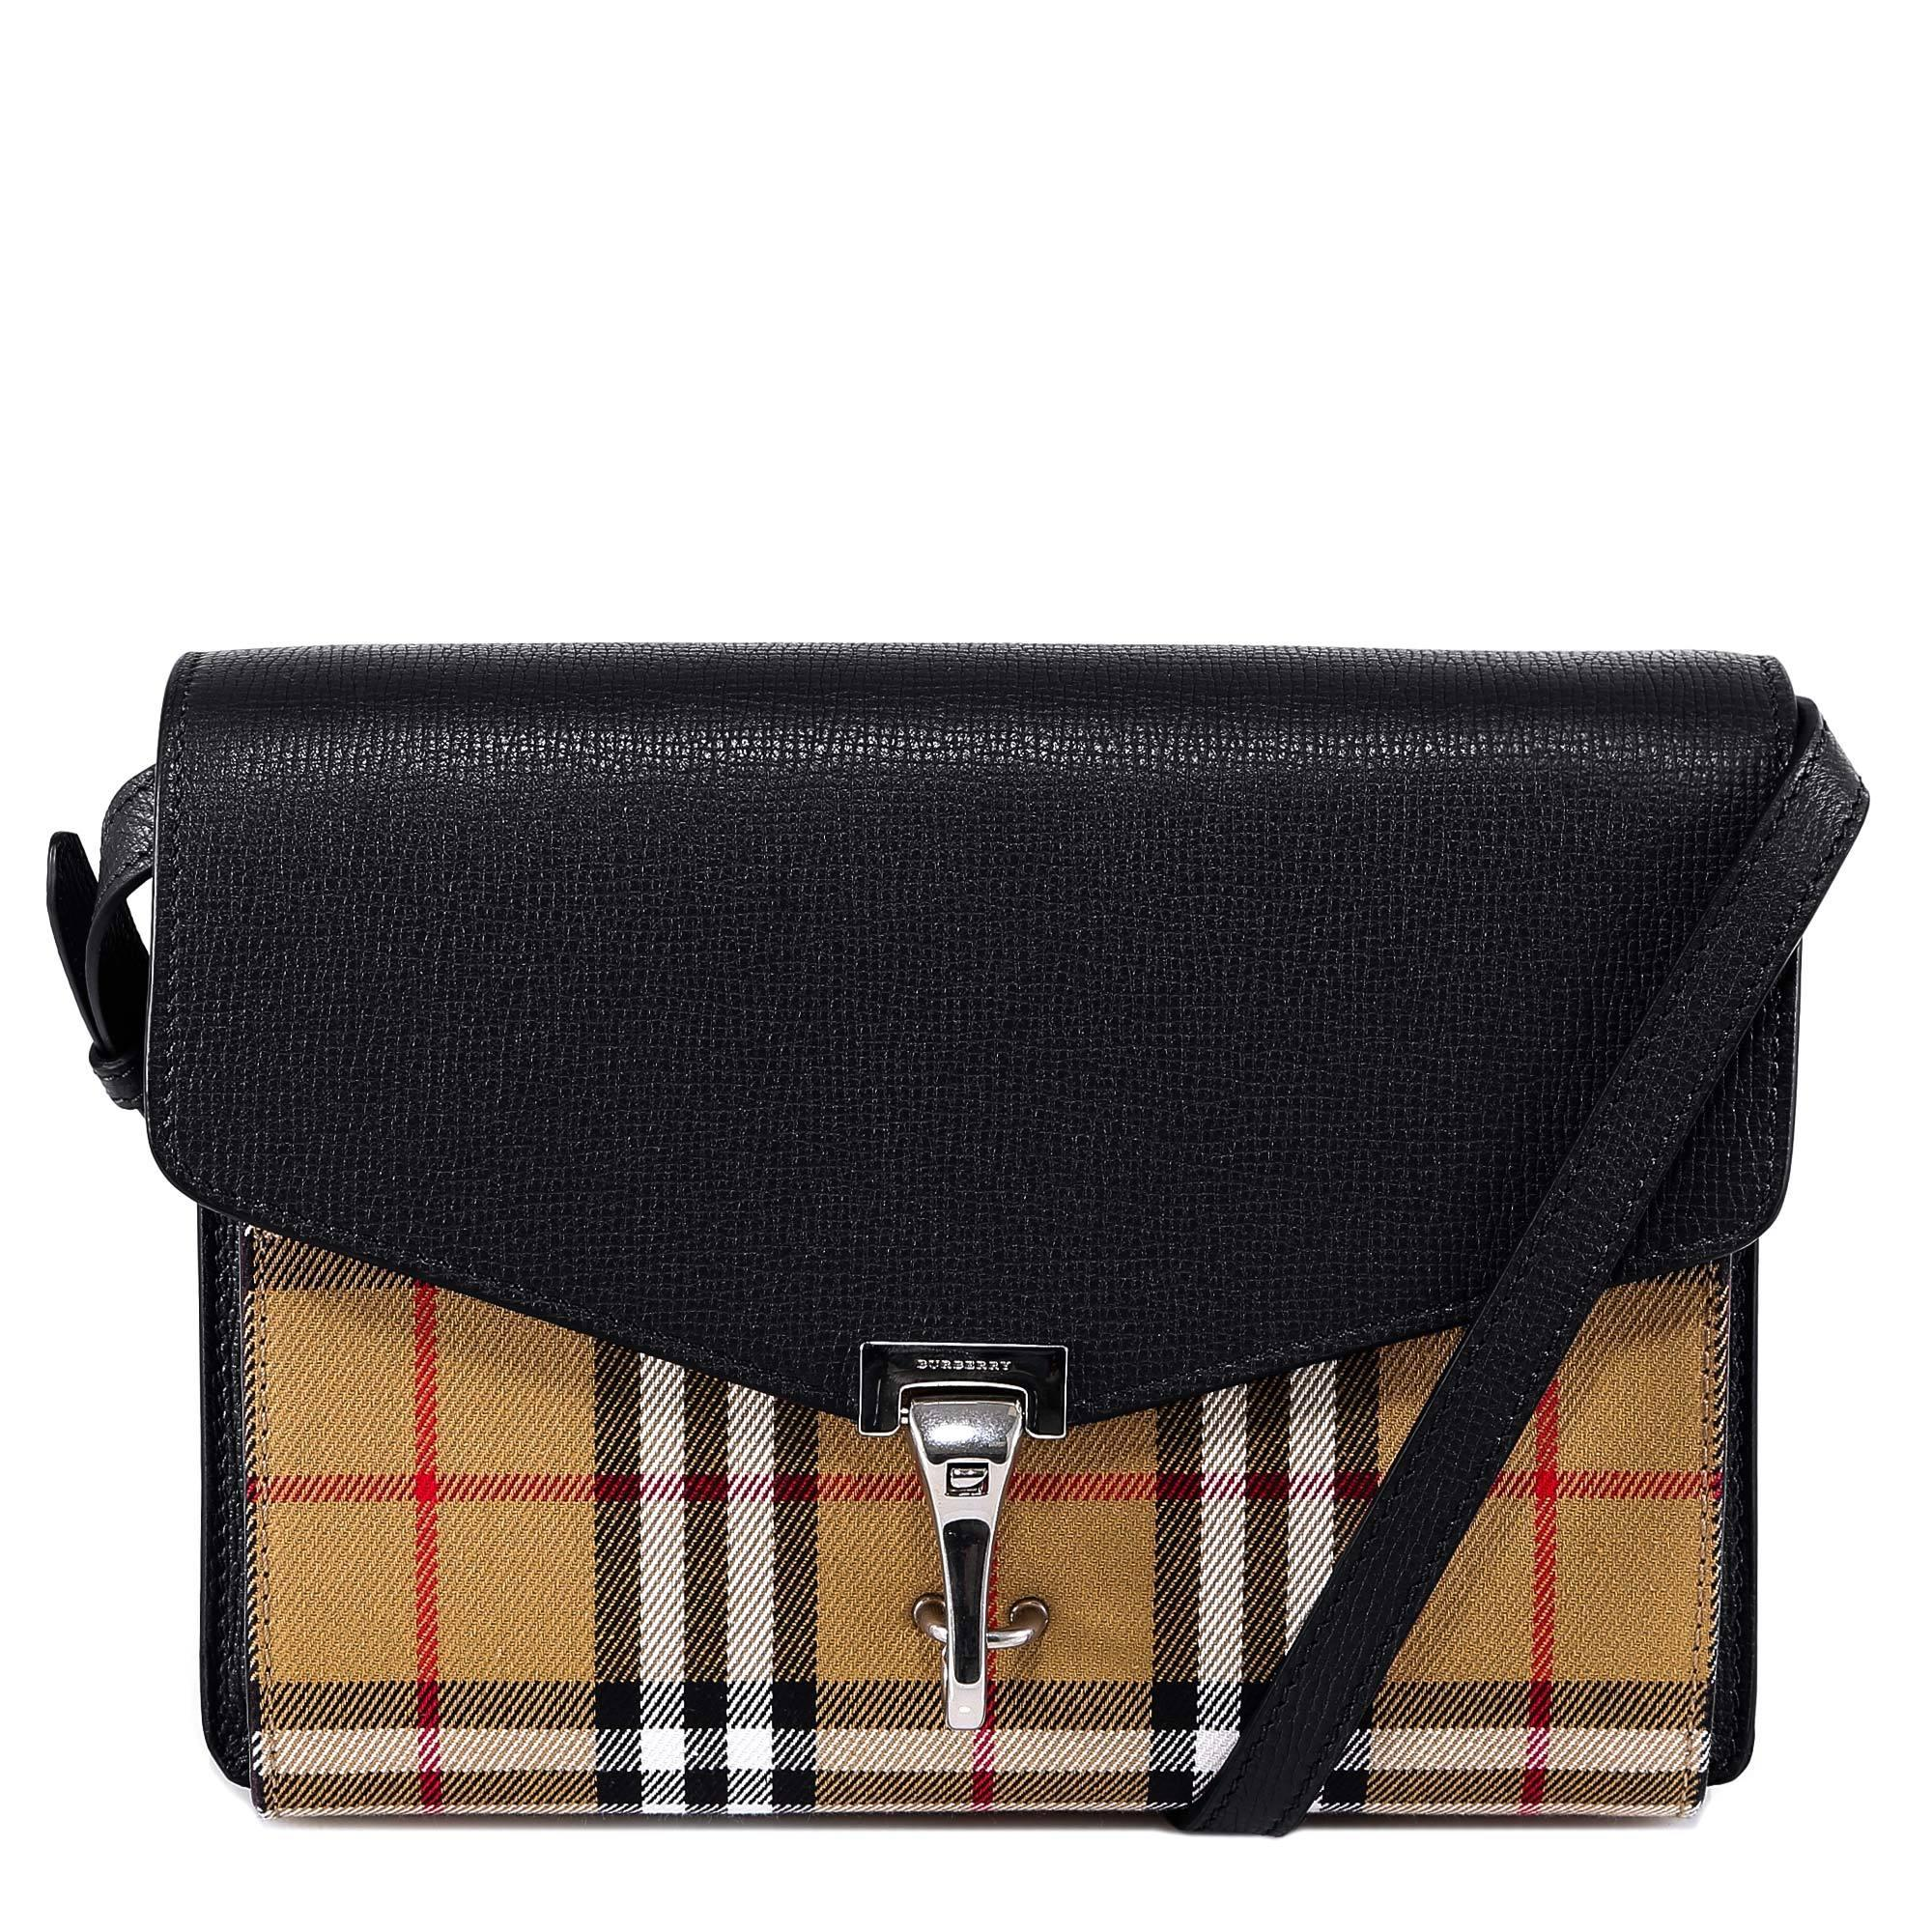 35082153318 Burberry Small Vintage Check Crossbody Bag in Black - Lyst